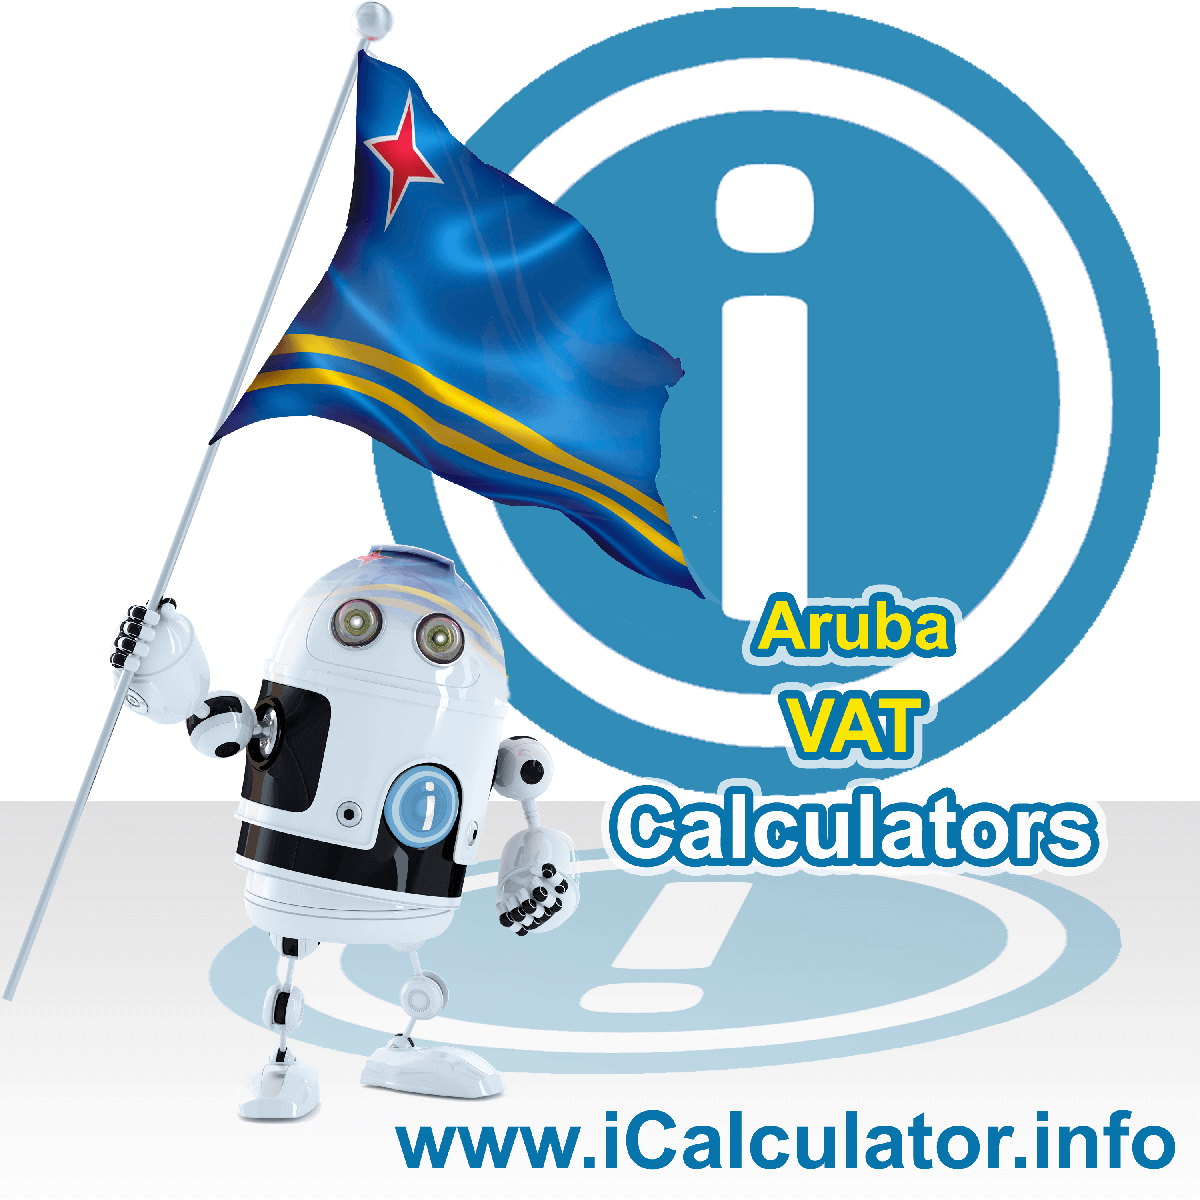 Aruba VAT Calculator. This image shows the Aruba flag and information relating to the VAT formula used for calculating Value Added Tax in Aruba using the Aruba VAT Calculator in 2020